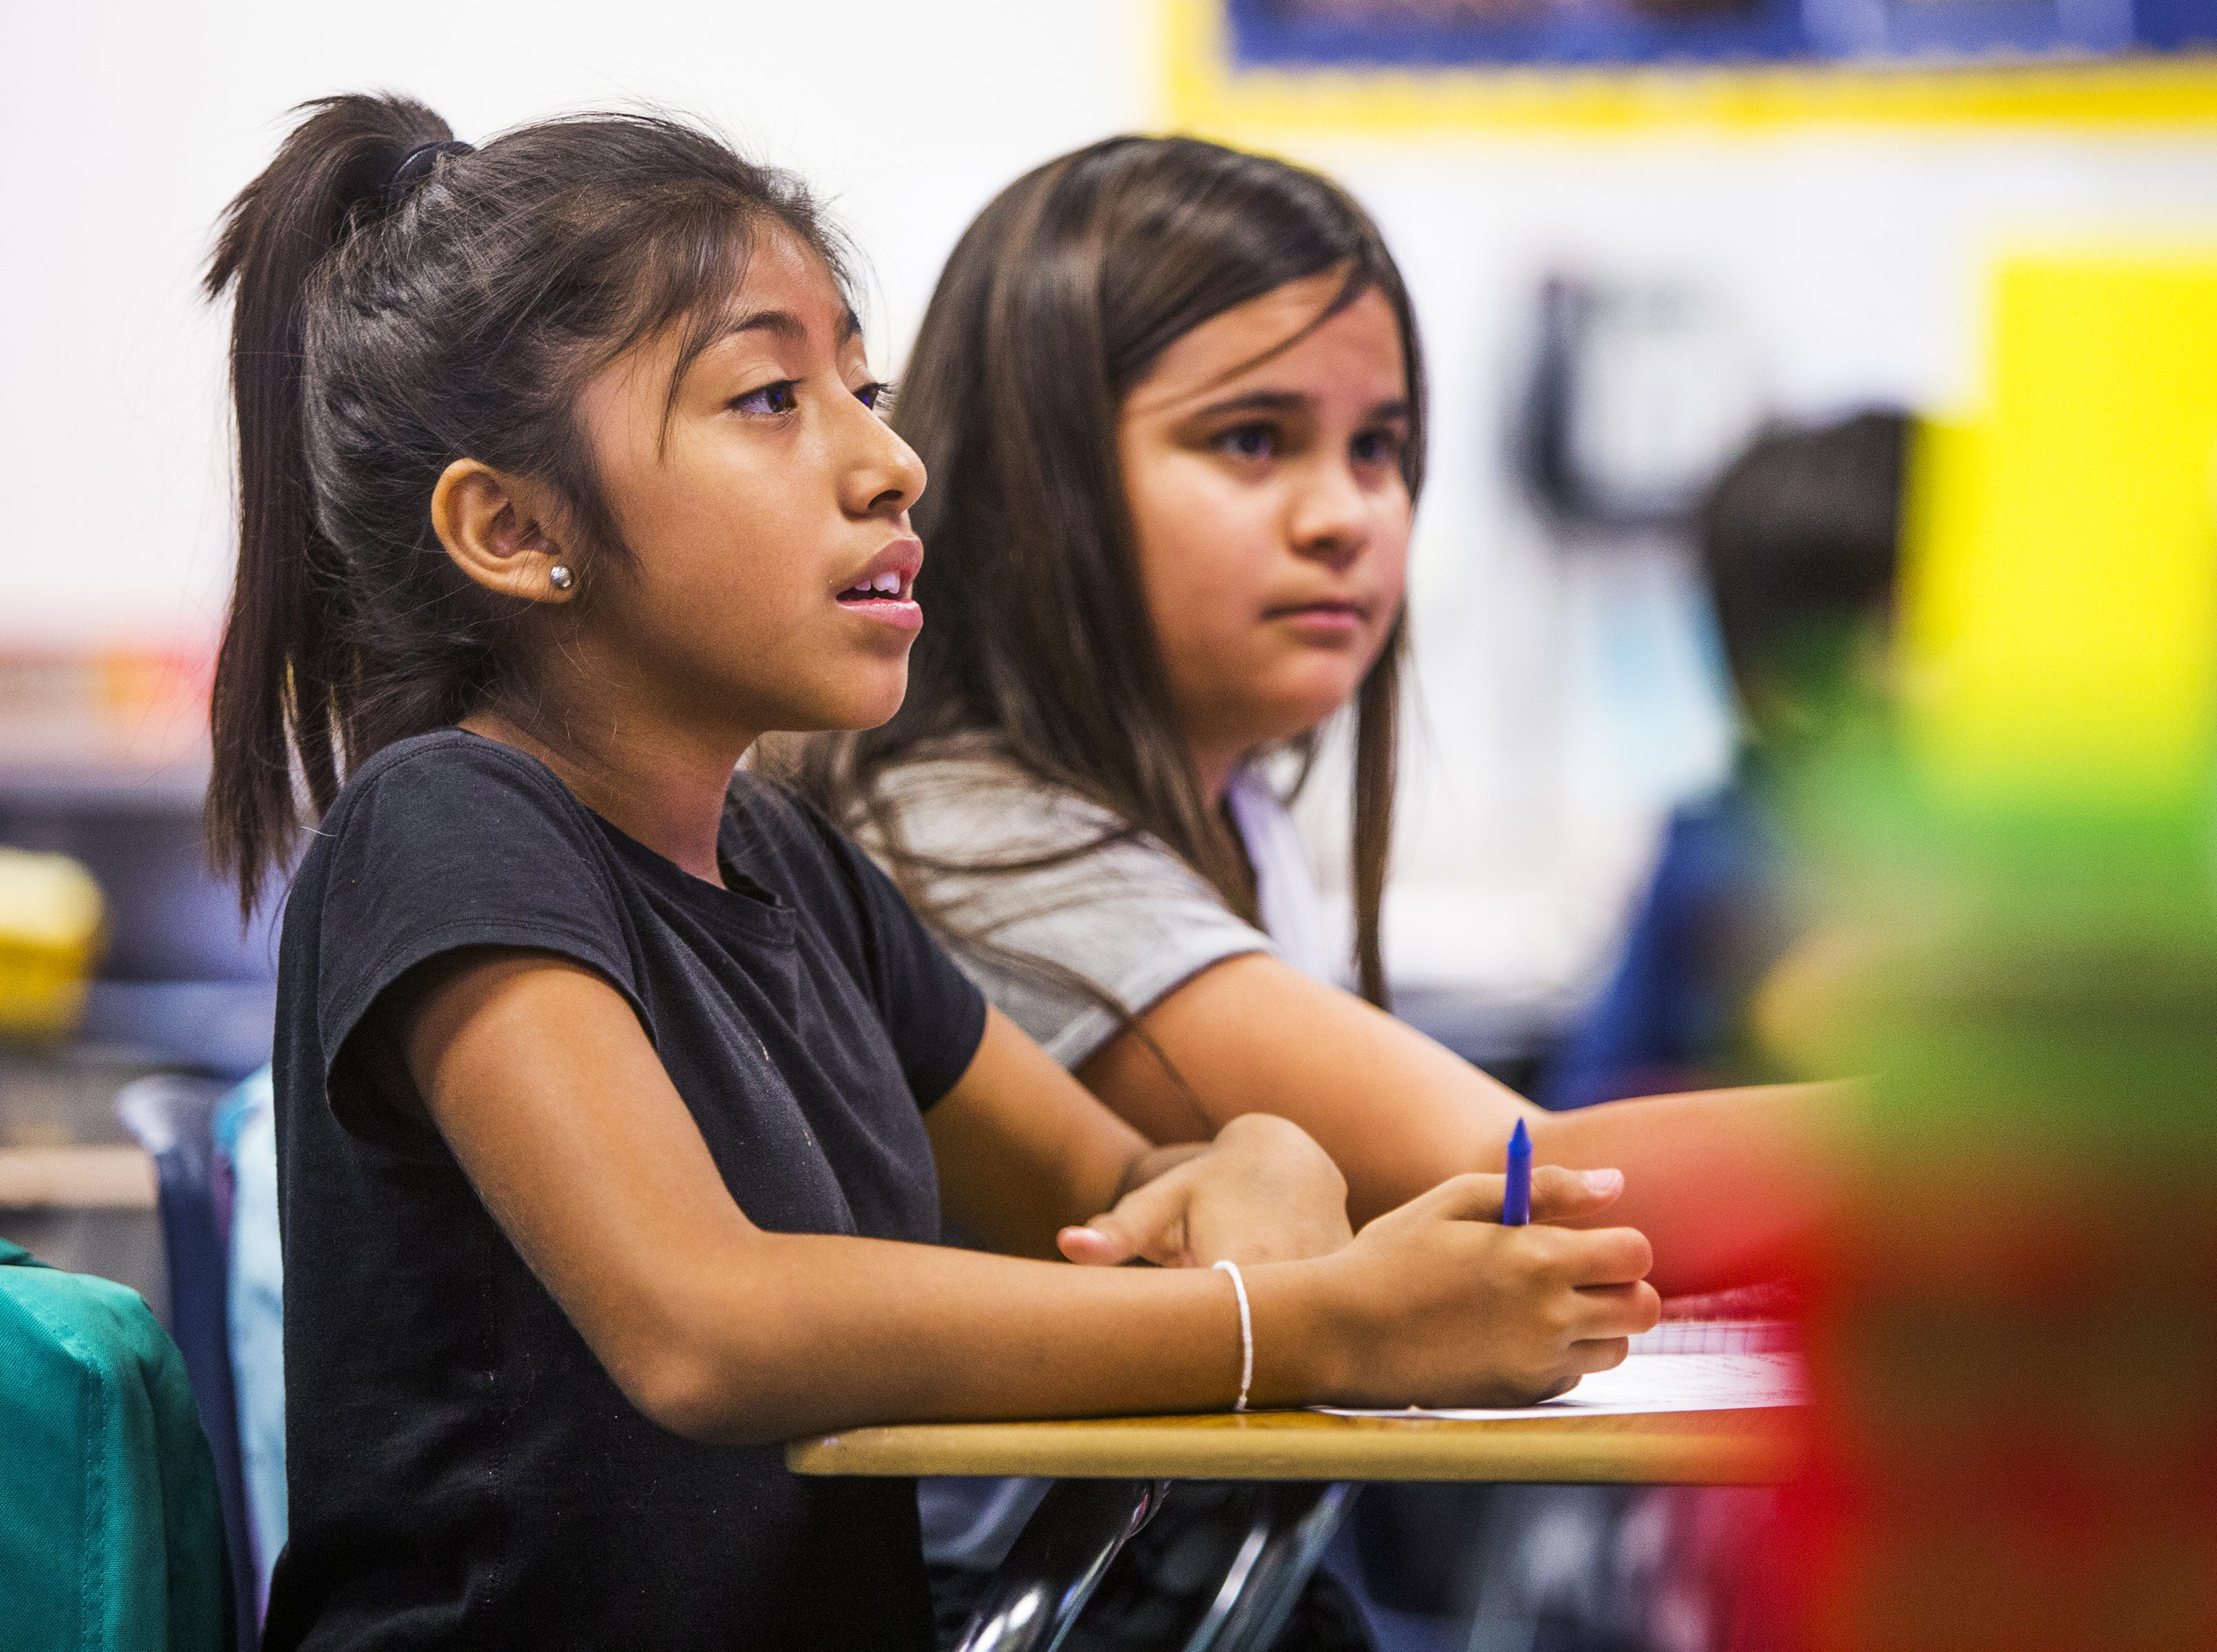 Julissa Aguire Flores, 11, left, and Linda Escarrega Soberanes, 10, listen to teacher Rebecca Garelli during 6th grade science class at Sevilla West Elementary School in Phoenix, Monday morning, September 17, 2018. Garelli has been one of the leaders of the #RedforEd movement, demanding increased funding for education in Arizona.